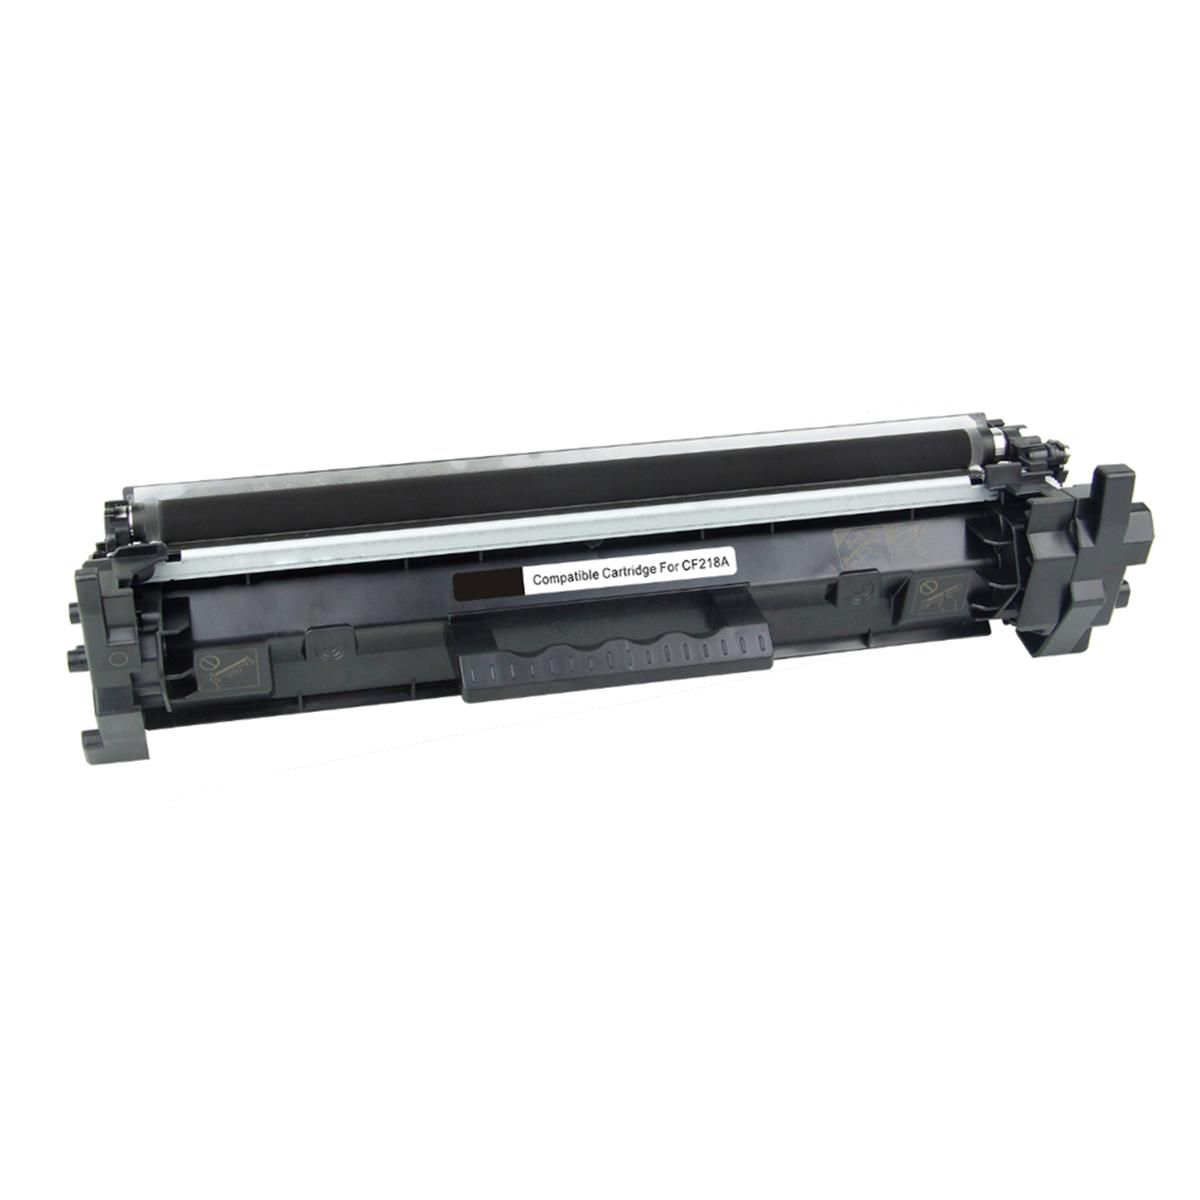 TONER HP CF218A 218a 18a m132 m104- 1,4K COM CHIP - COMPATIVEL BYQUALY